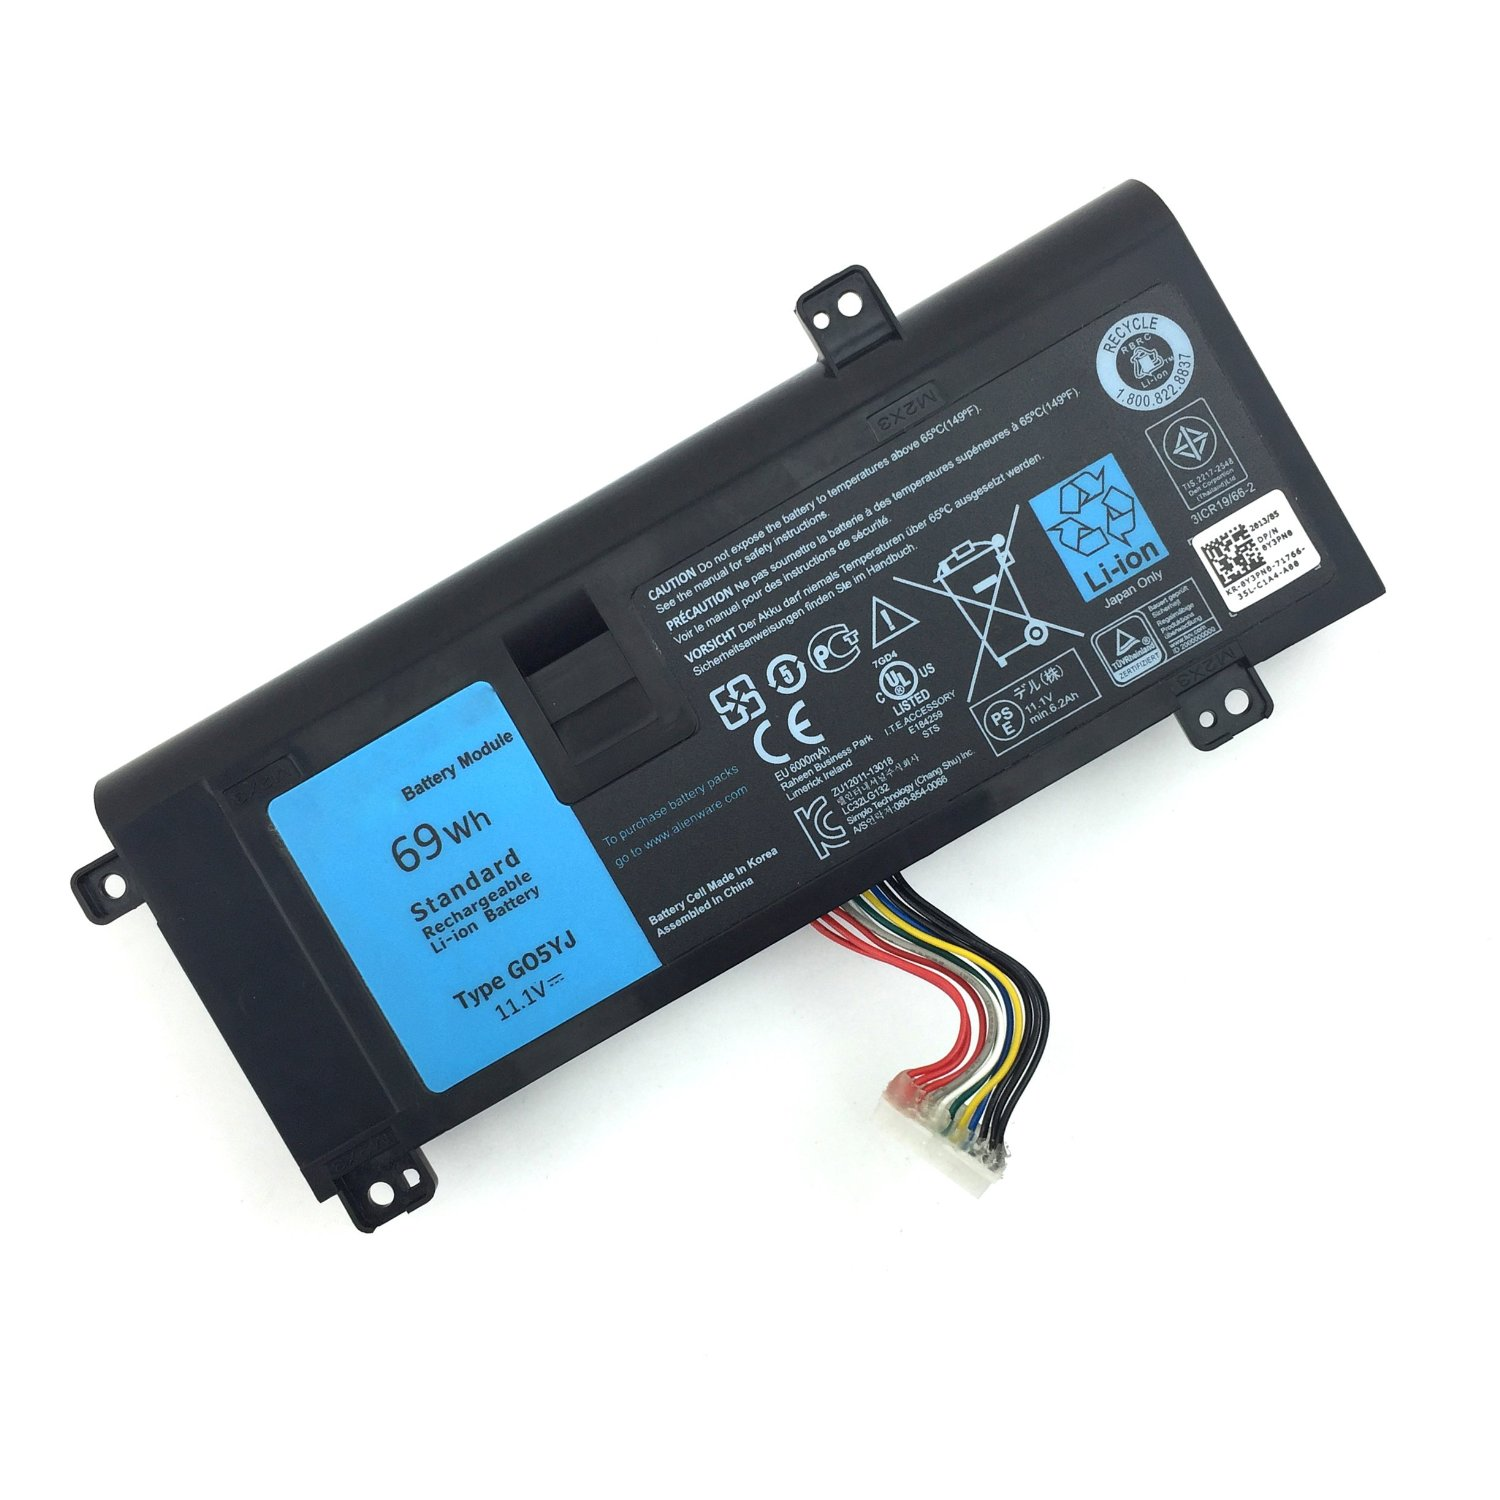 DJW 69Wh 11.1V G05YJ Laptop Battery for Dell Alienware 14 A14 M14X R3 R4 Series Notebook:Alienware 14D-1528 14D 1528 ALW14D G05YJ 0G05YJ Y3PN0 8X70T[12 Months Warranty]